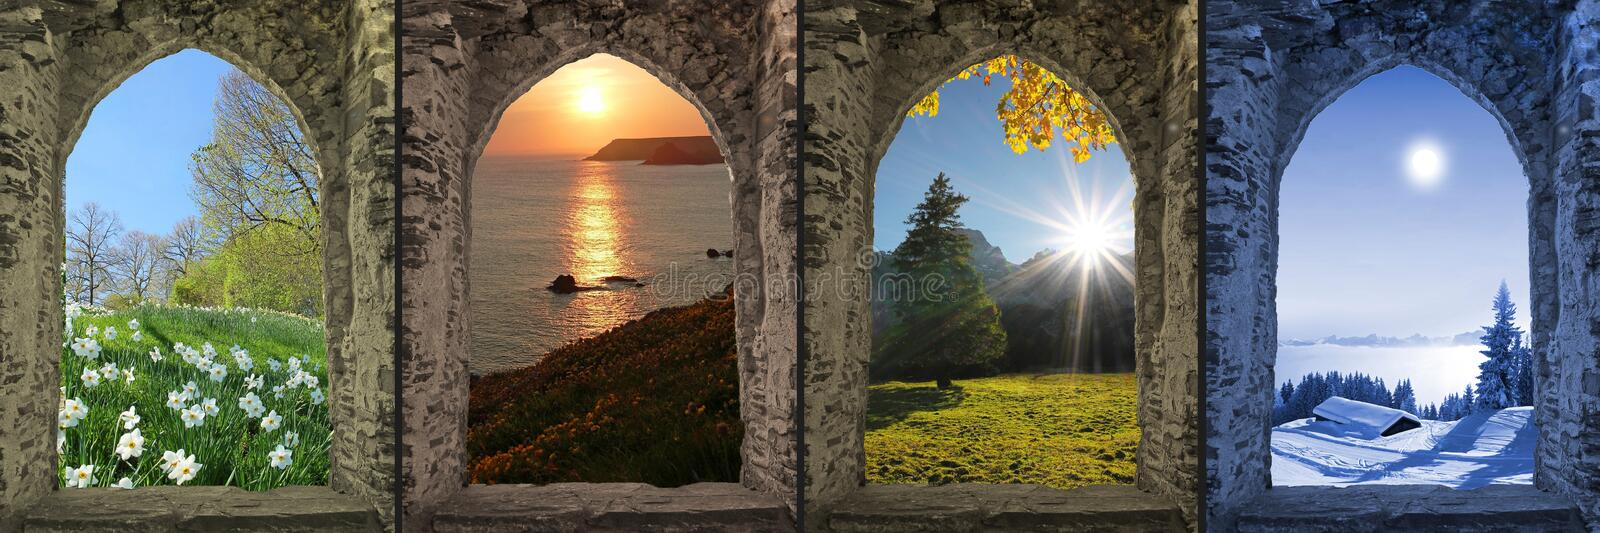 Collage four seasons - view through arched castle window stock photography